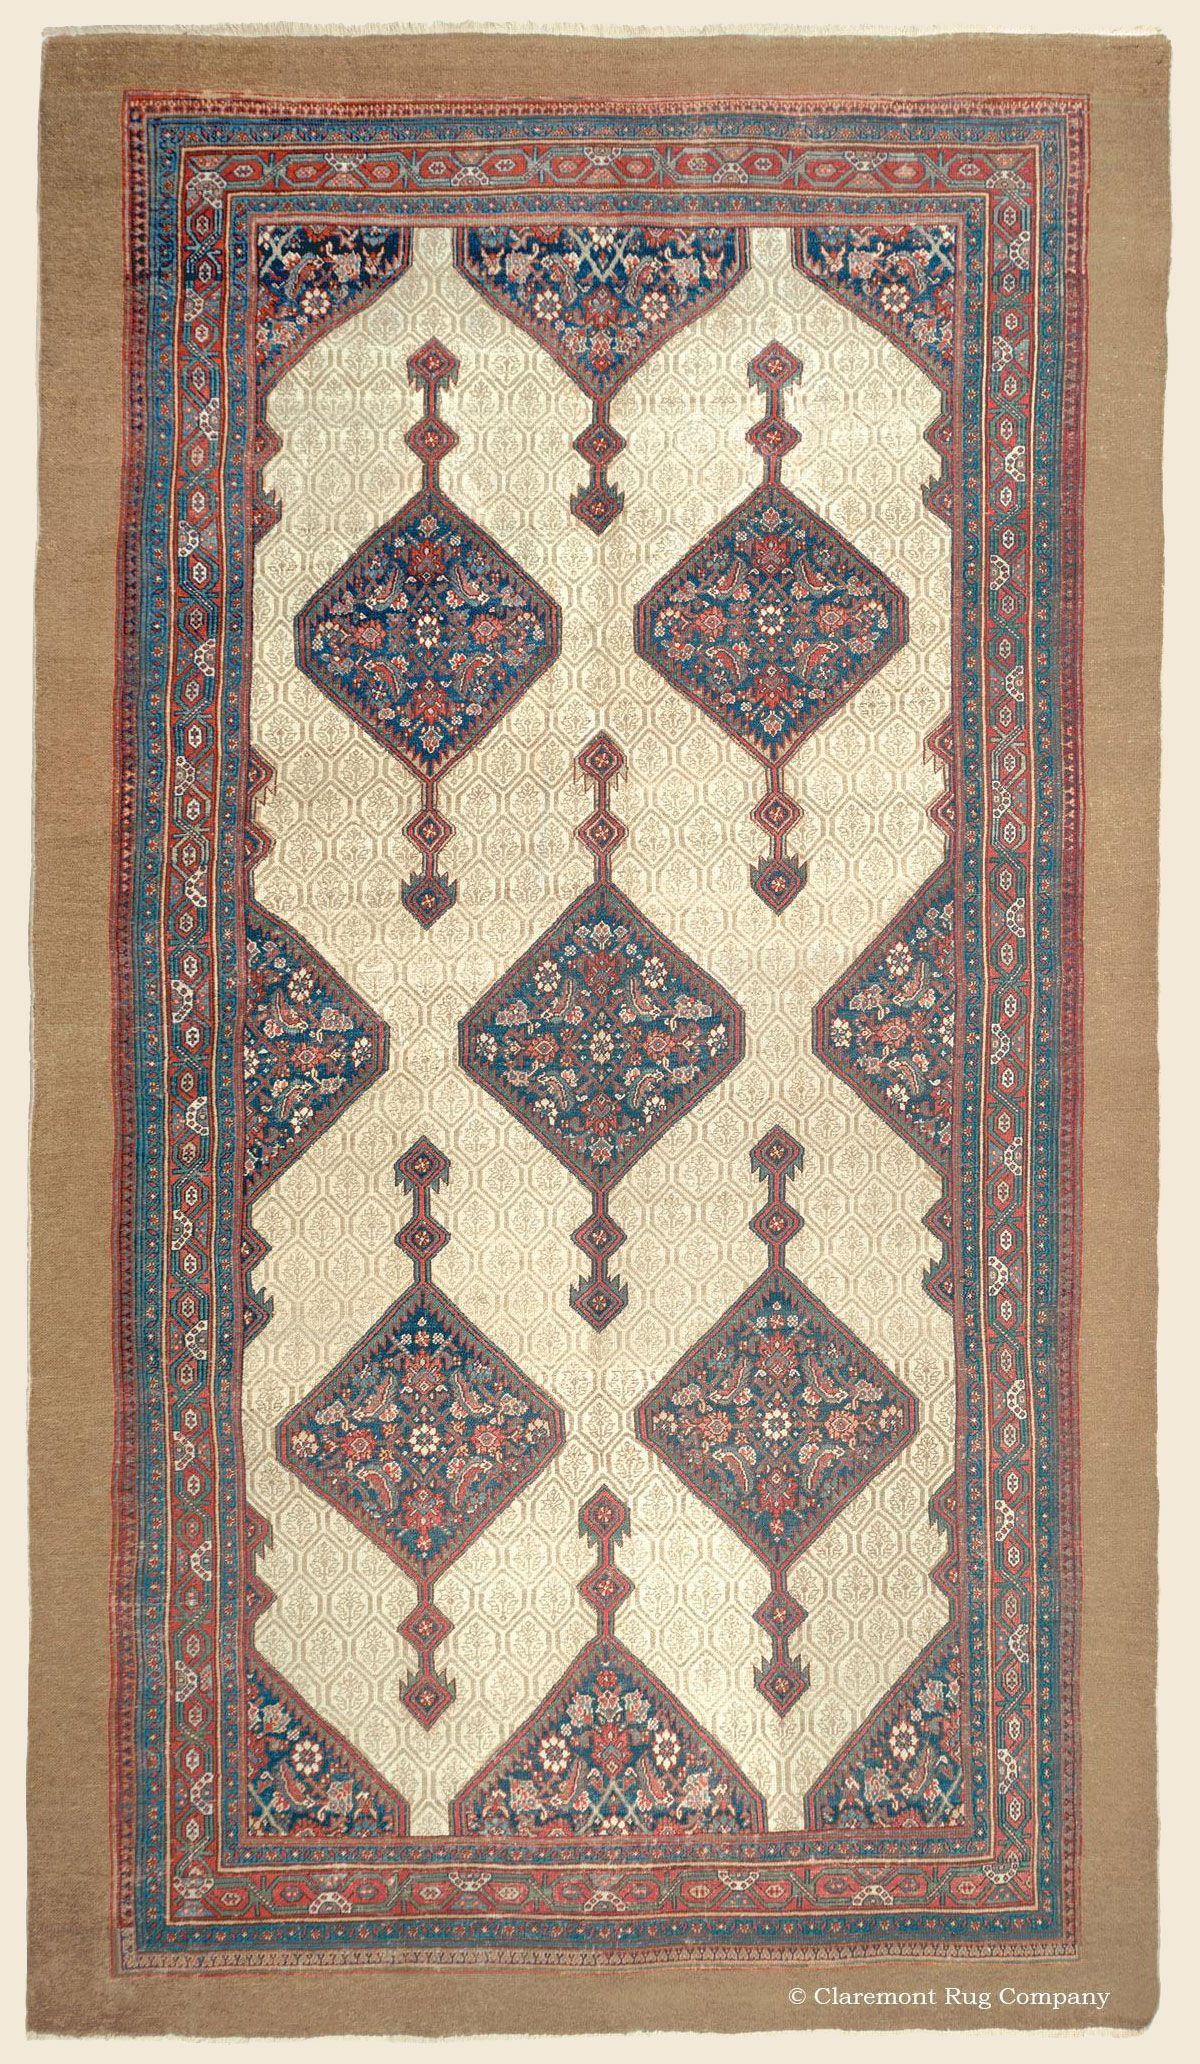 Serab Camelhair Northwest Persian Antique Late 19th Century Rug 6ft 10in X 12ft 10in Claremont Rug Company Claremont Rug Company Rugs Rugs On Carpet